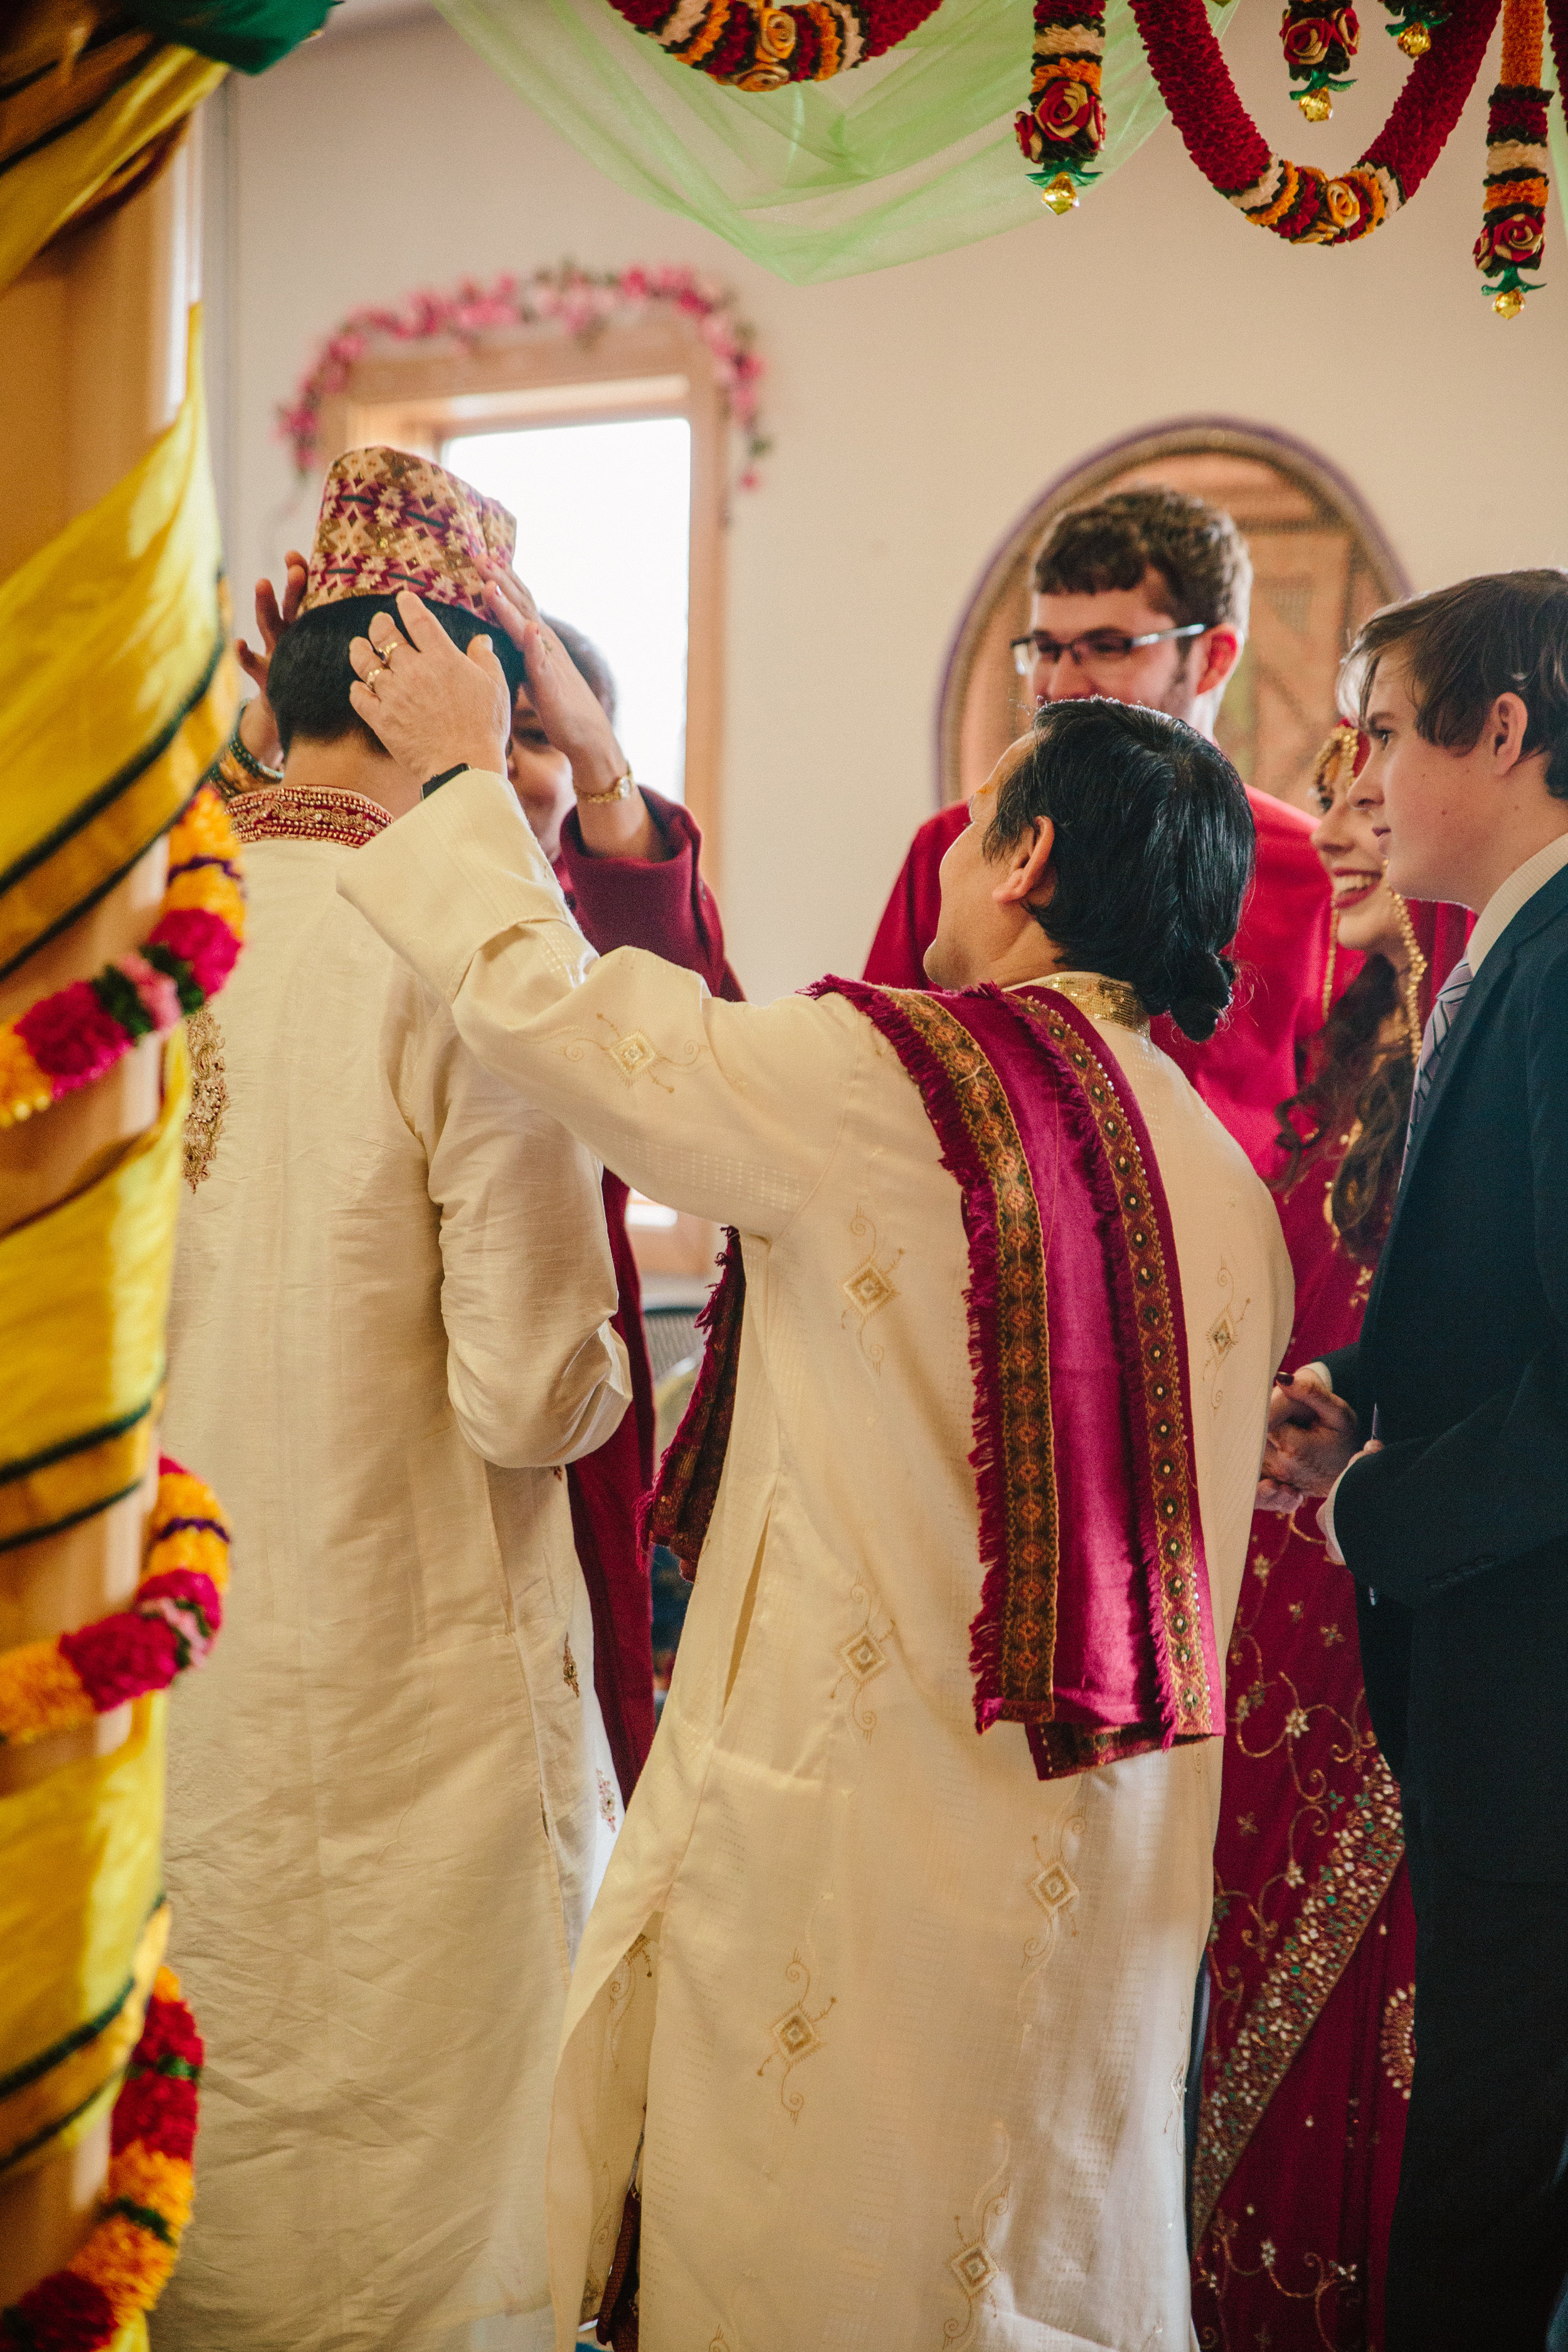 Father of the groom gives traditional Nepali cap to son during wedding ceremony des moines photographers